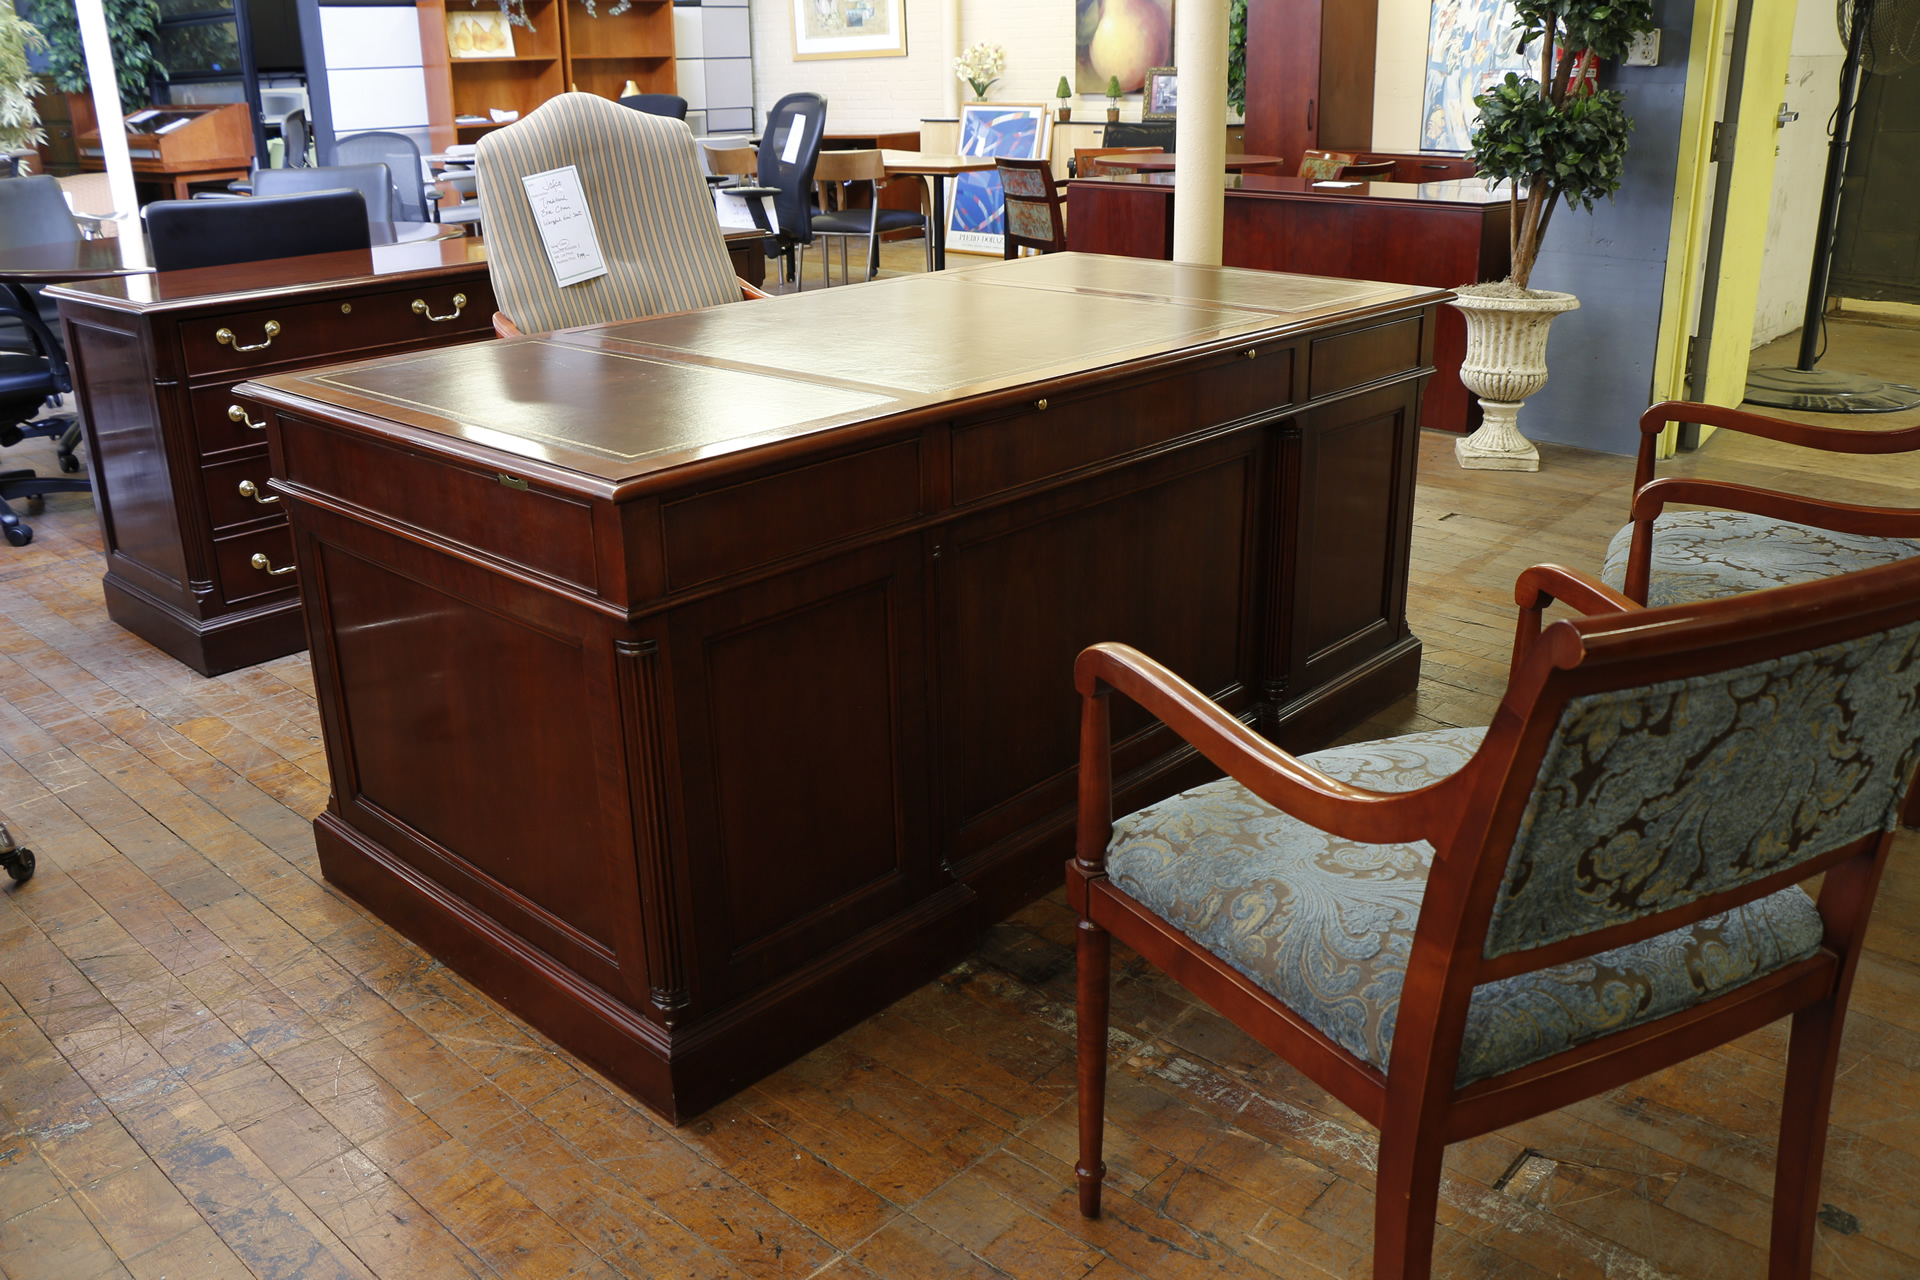 Councill George III Mahogany Executive Desk & Credenza Suite